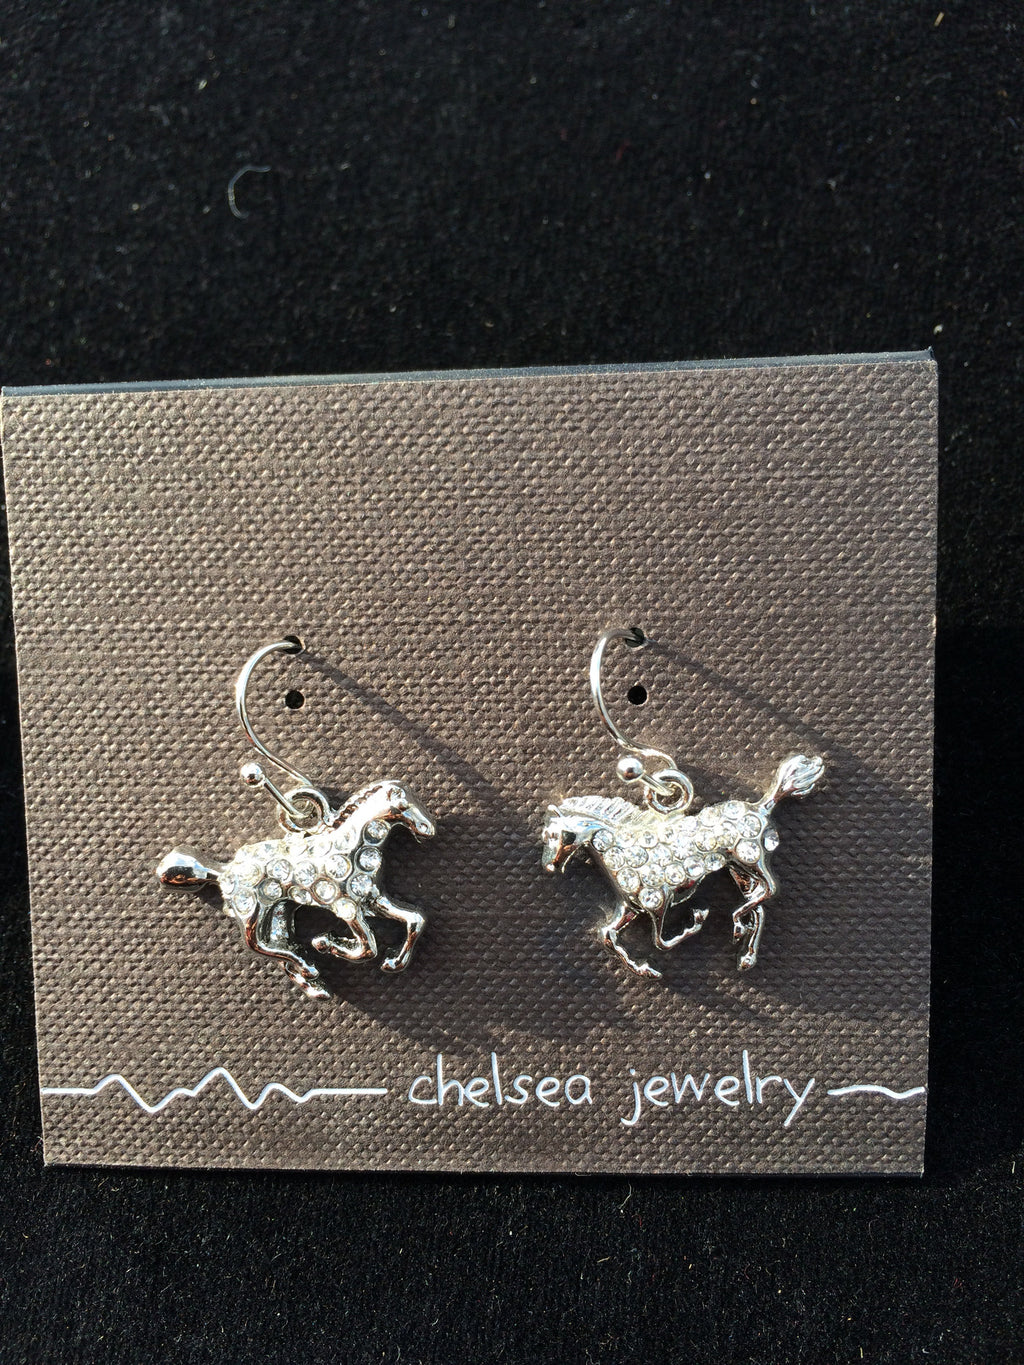 Chelsea - Horse Earrings with Rhinestones